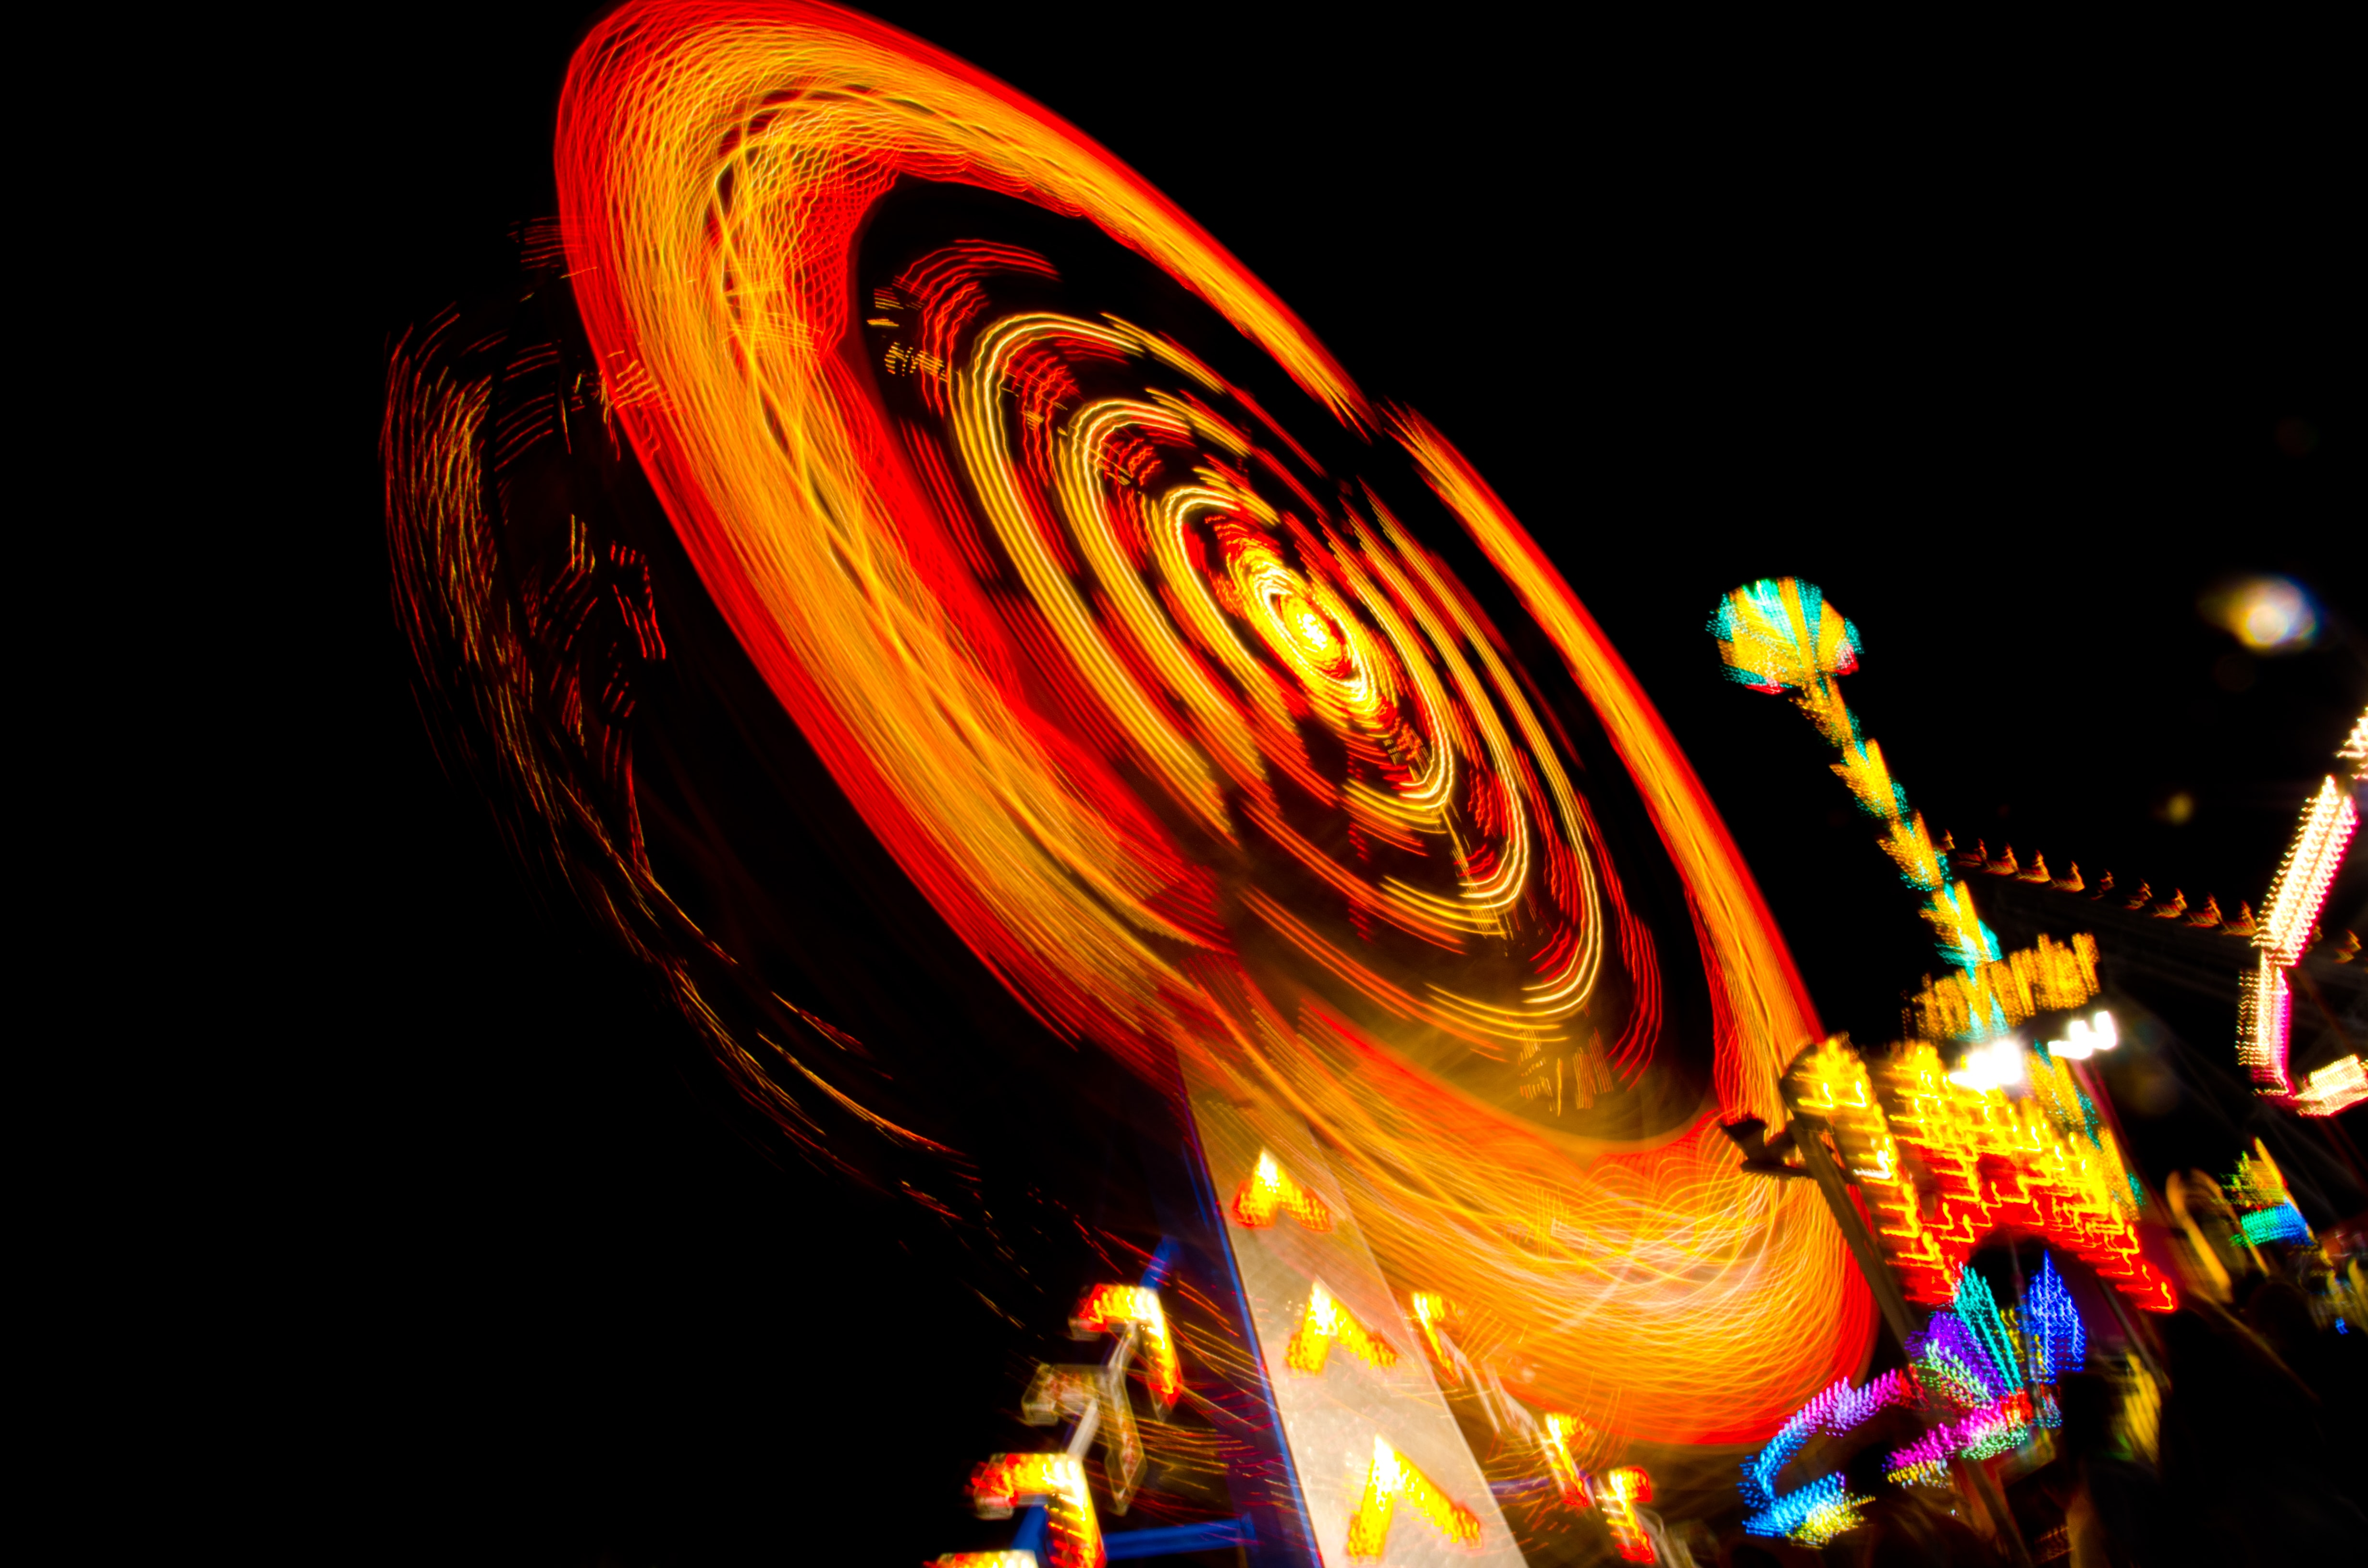 A lively shot of an illuminated ferris wheel at the fairground in Ocean City